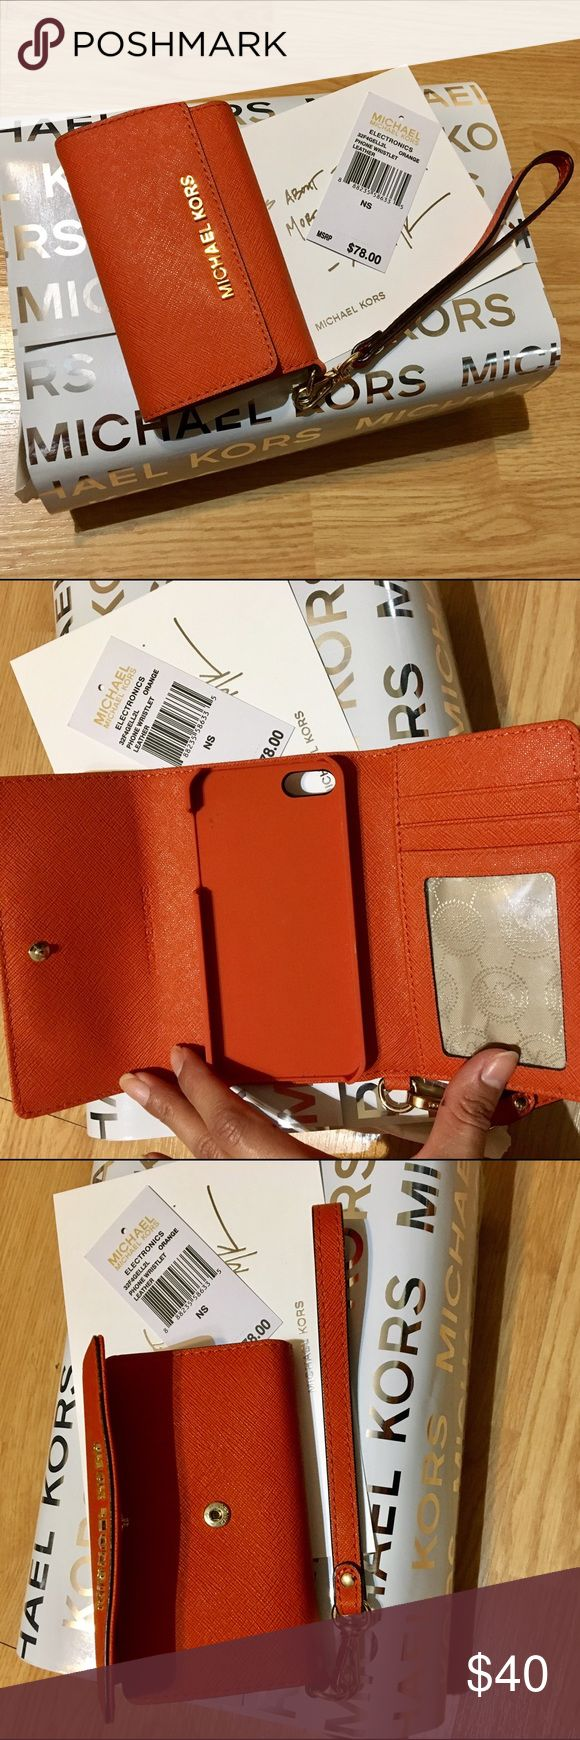 Michael Kors phone wristlet for iPhone 5 Brand new in original packaging,Saffiano orange leather phone wristlet for iPhone 5, has 3 card slots, 1 of which is an ID window, wristlet part is detachable MICHAEL Michael Kors Accessories Phone Cases